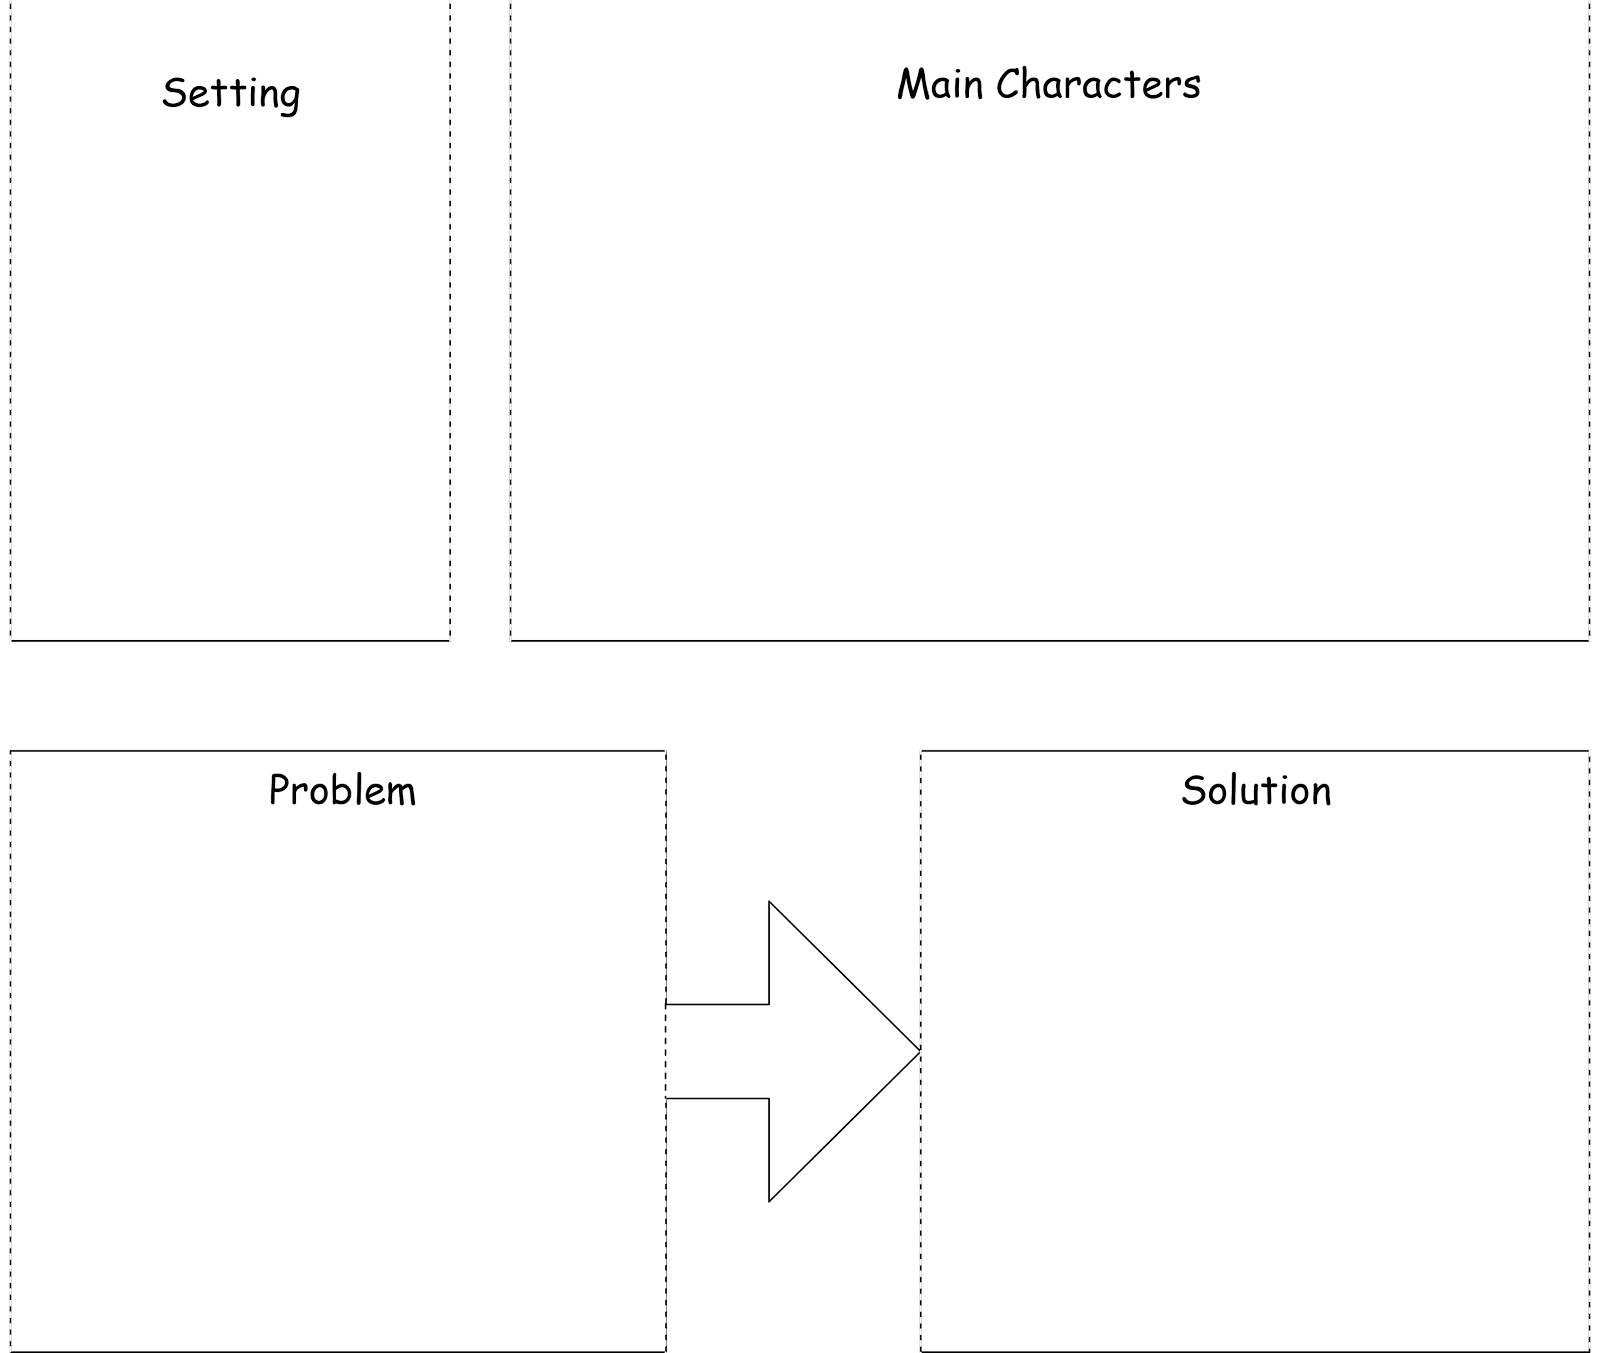 photo regarding Story Map Template Printable referred to as Basic Tale Map Printable - Mother Envy